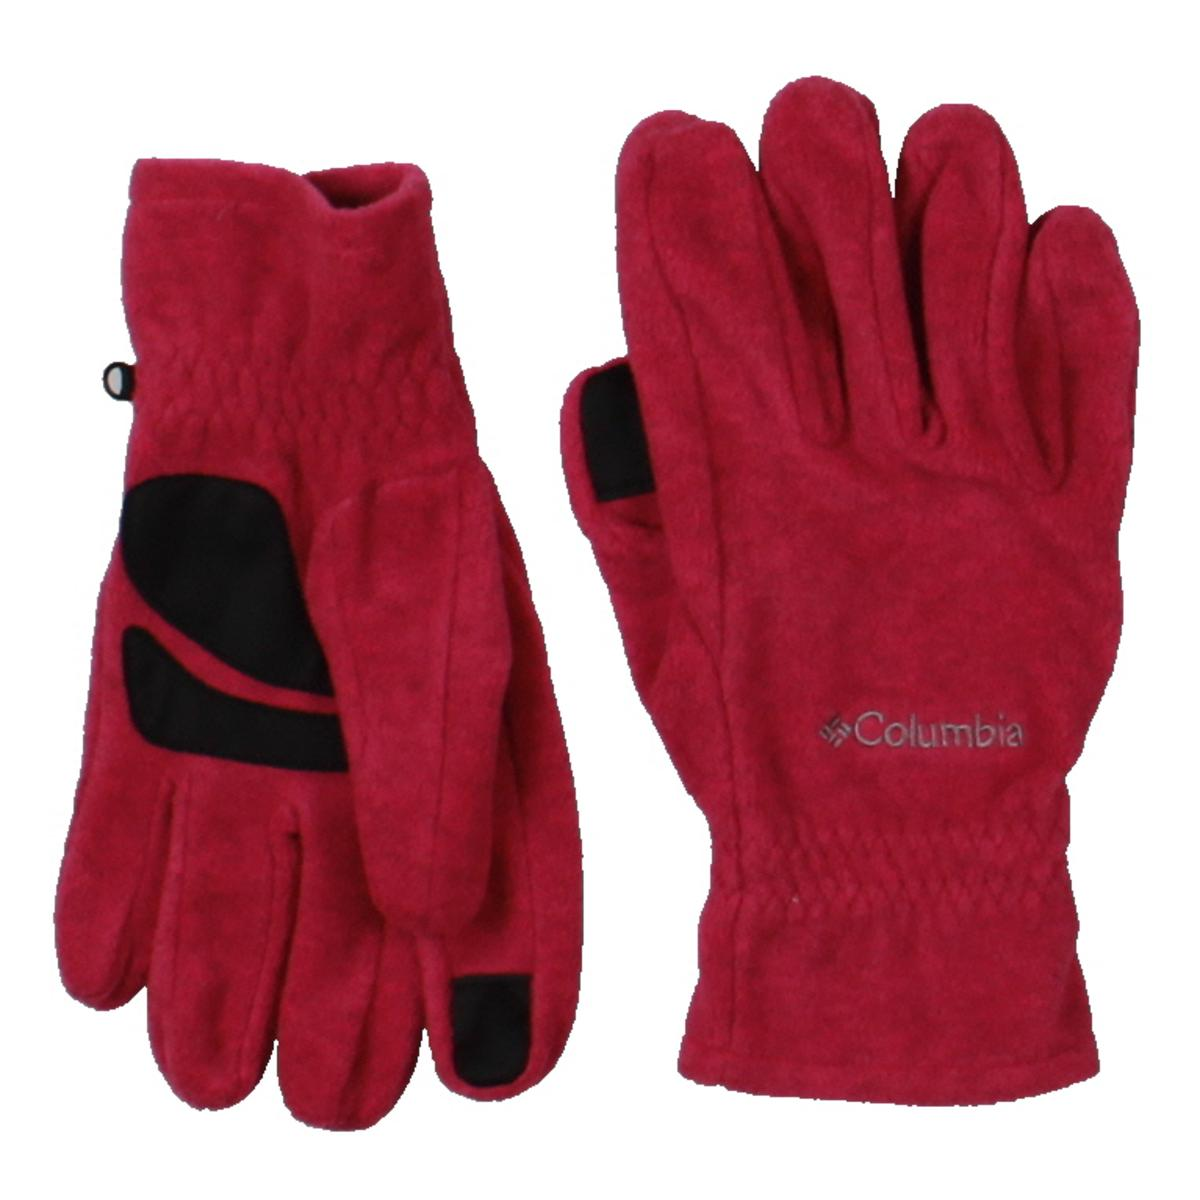 Columbia Womens Touch Screen Soft Warm Winter Gloves BHFO 2821